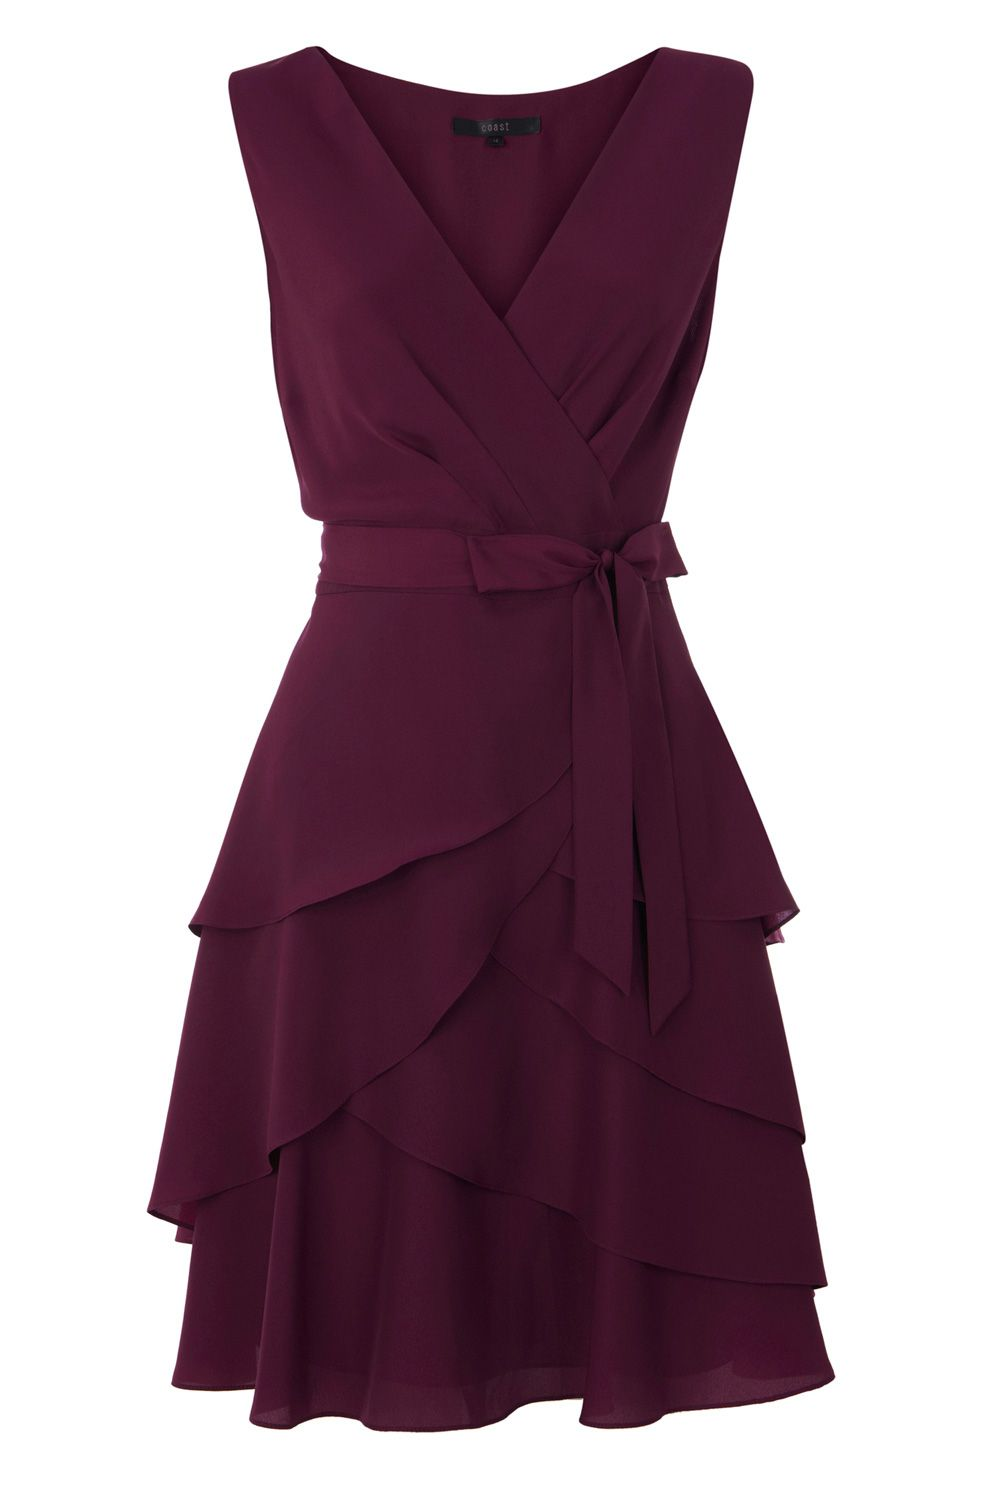 Wine color love this for bridesmaid dresses clothes i for Wine colored wedding dresses